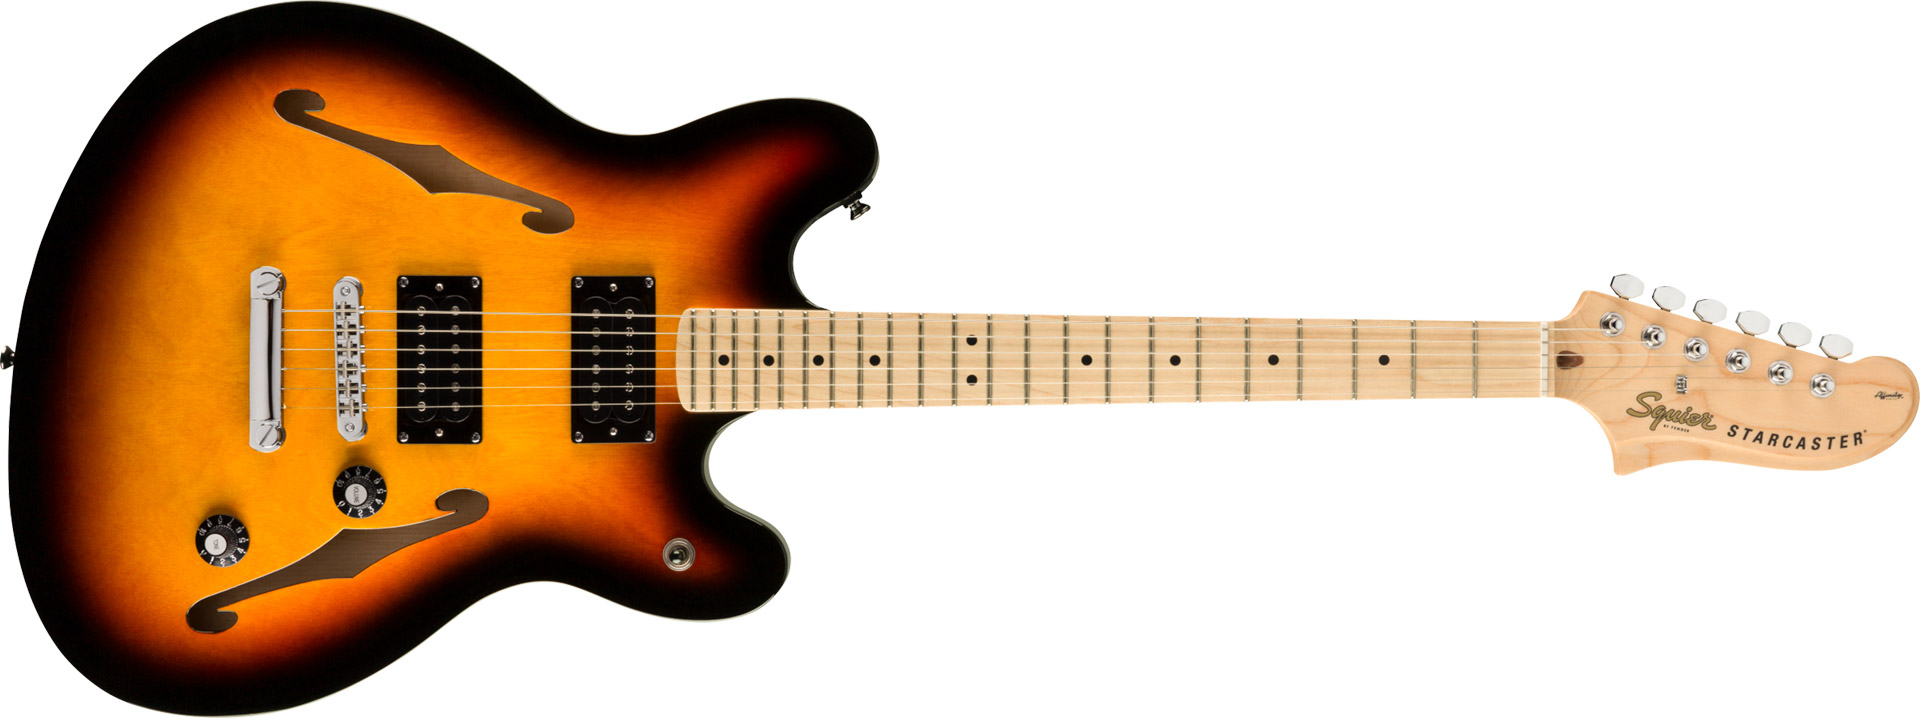 GUITARRA FENDER SQUIER AFFINITY STARCASTER MN - 037-0590-500 - 3-COLOR SUNBURST